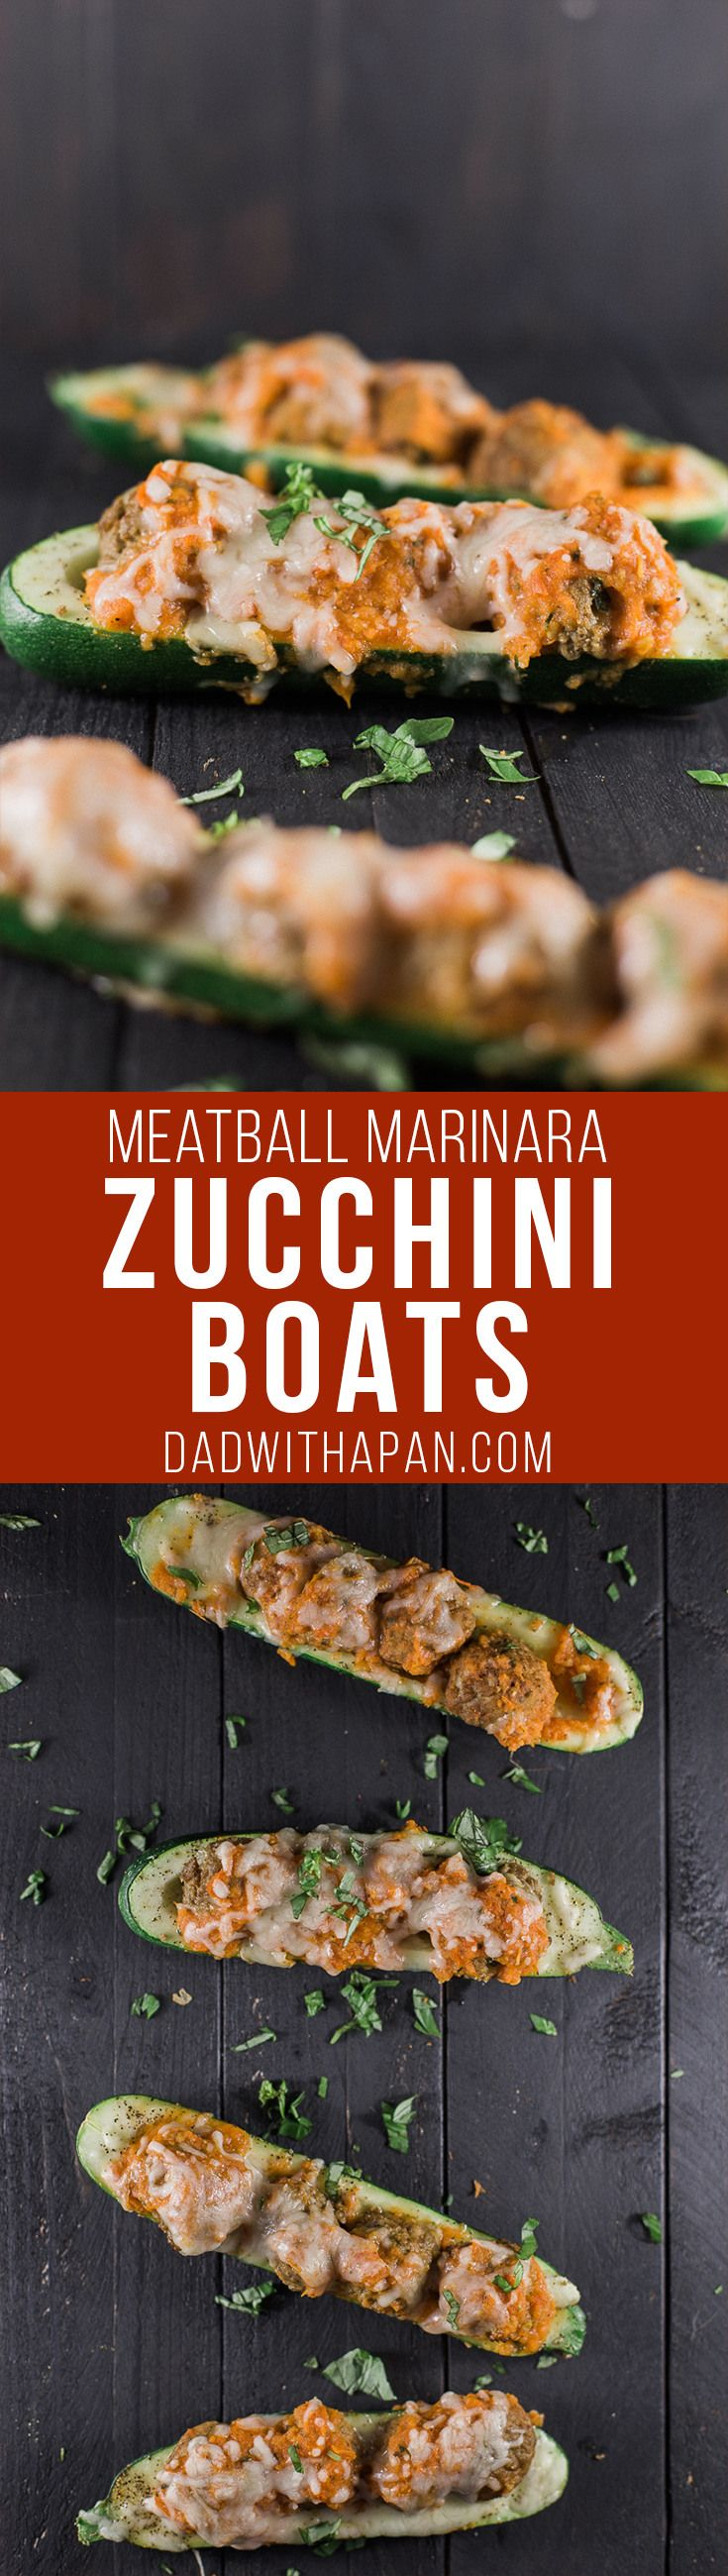 Meatball Marinara Zucchini Boats - Dad With A Pan